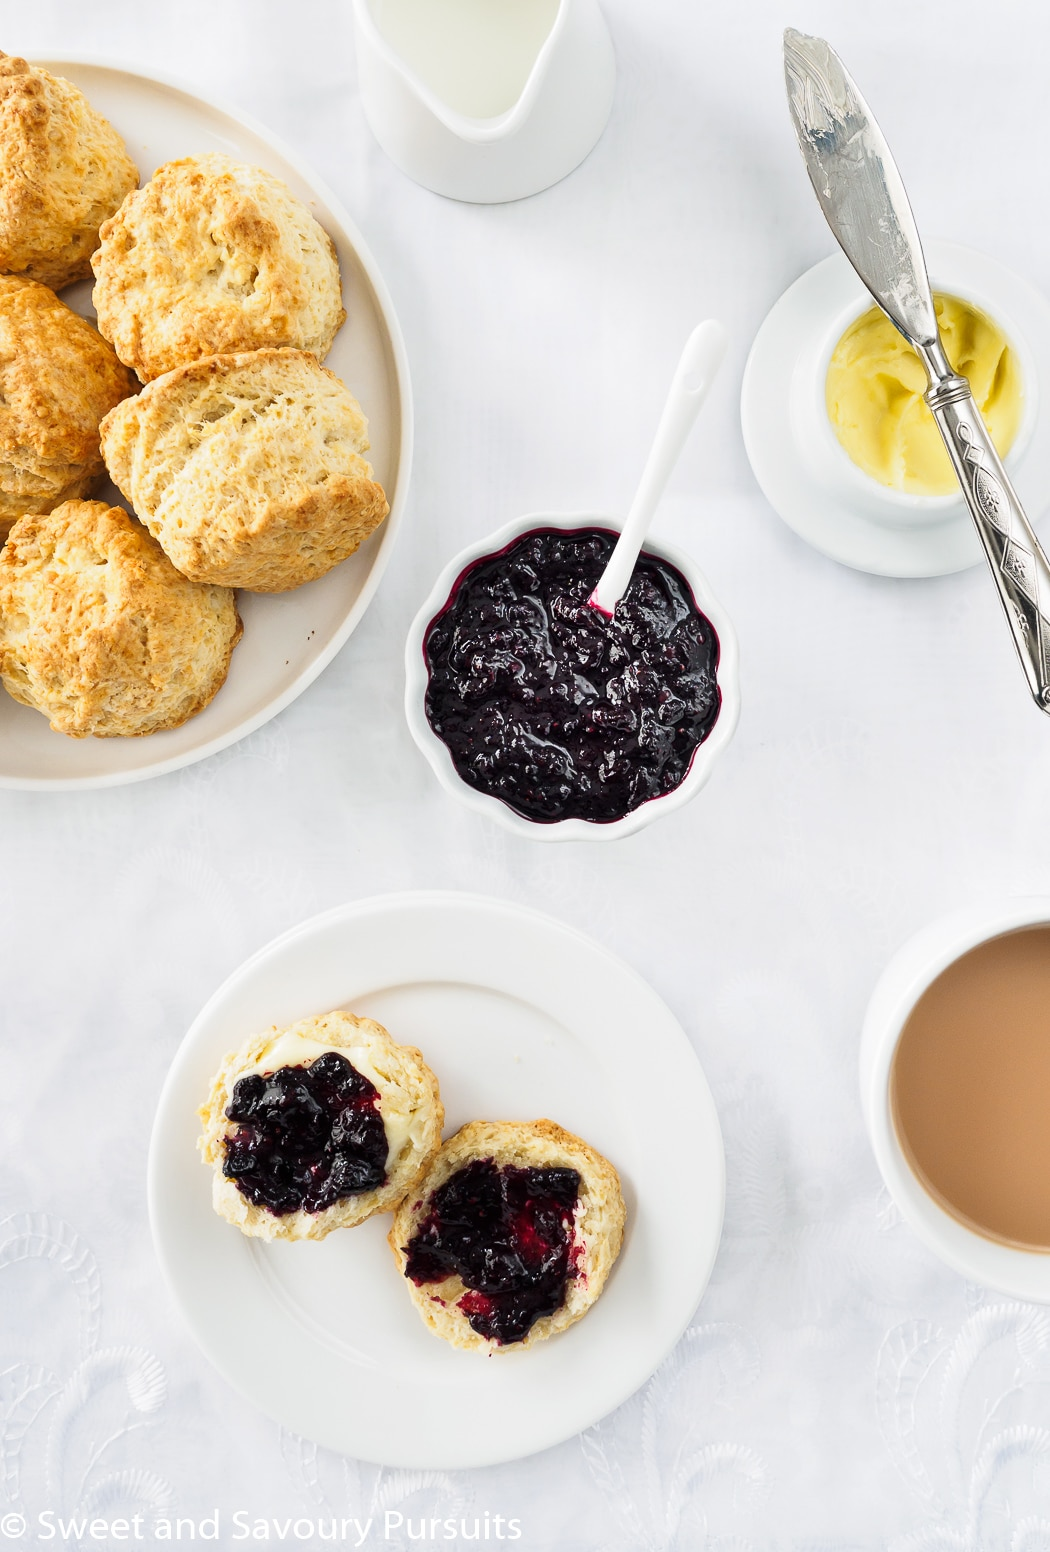 A dish of Irish Scones served with tea, butter and mixed berry jam.